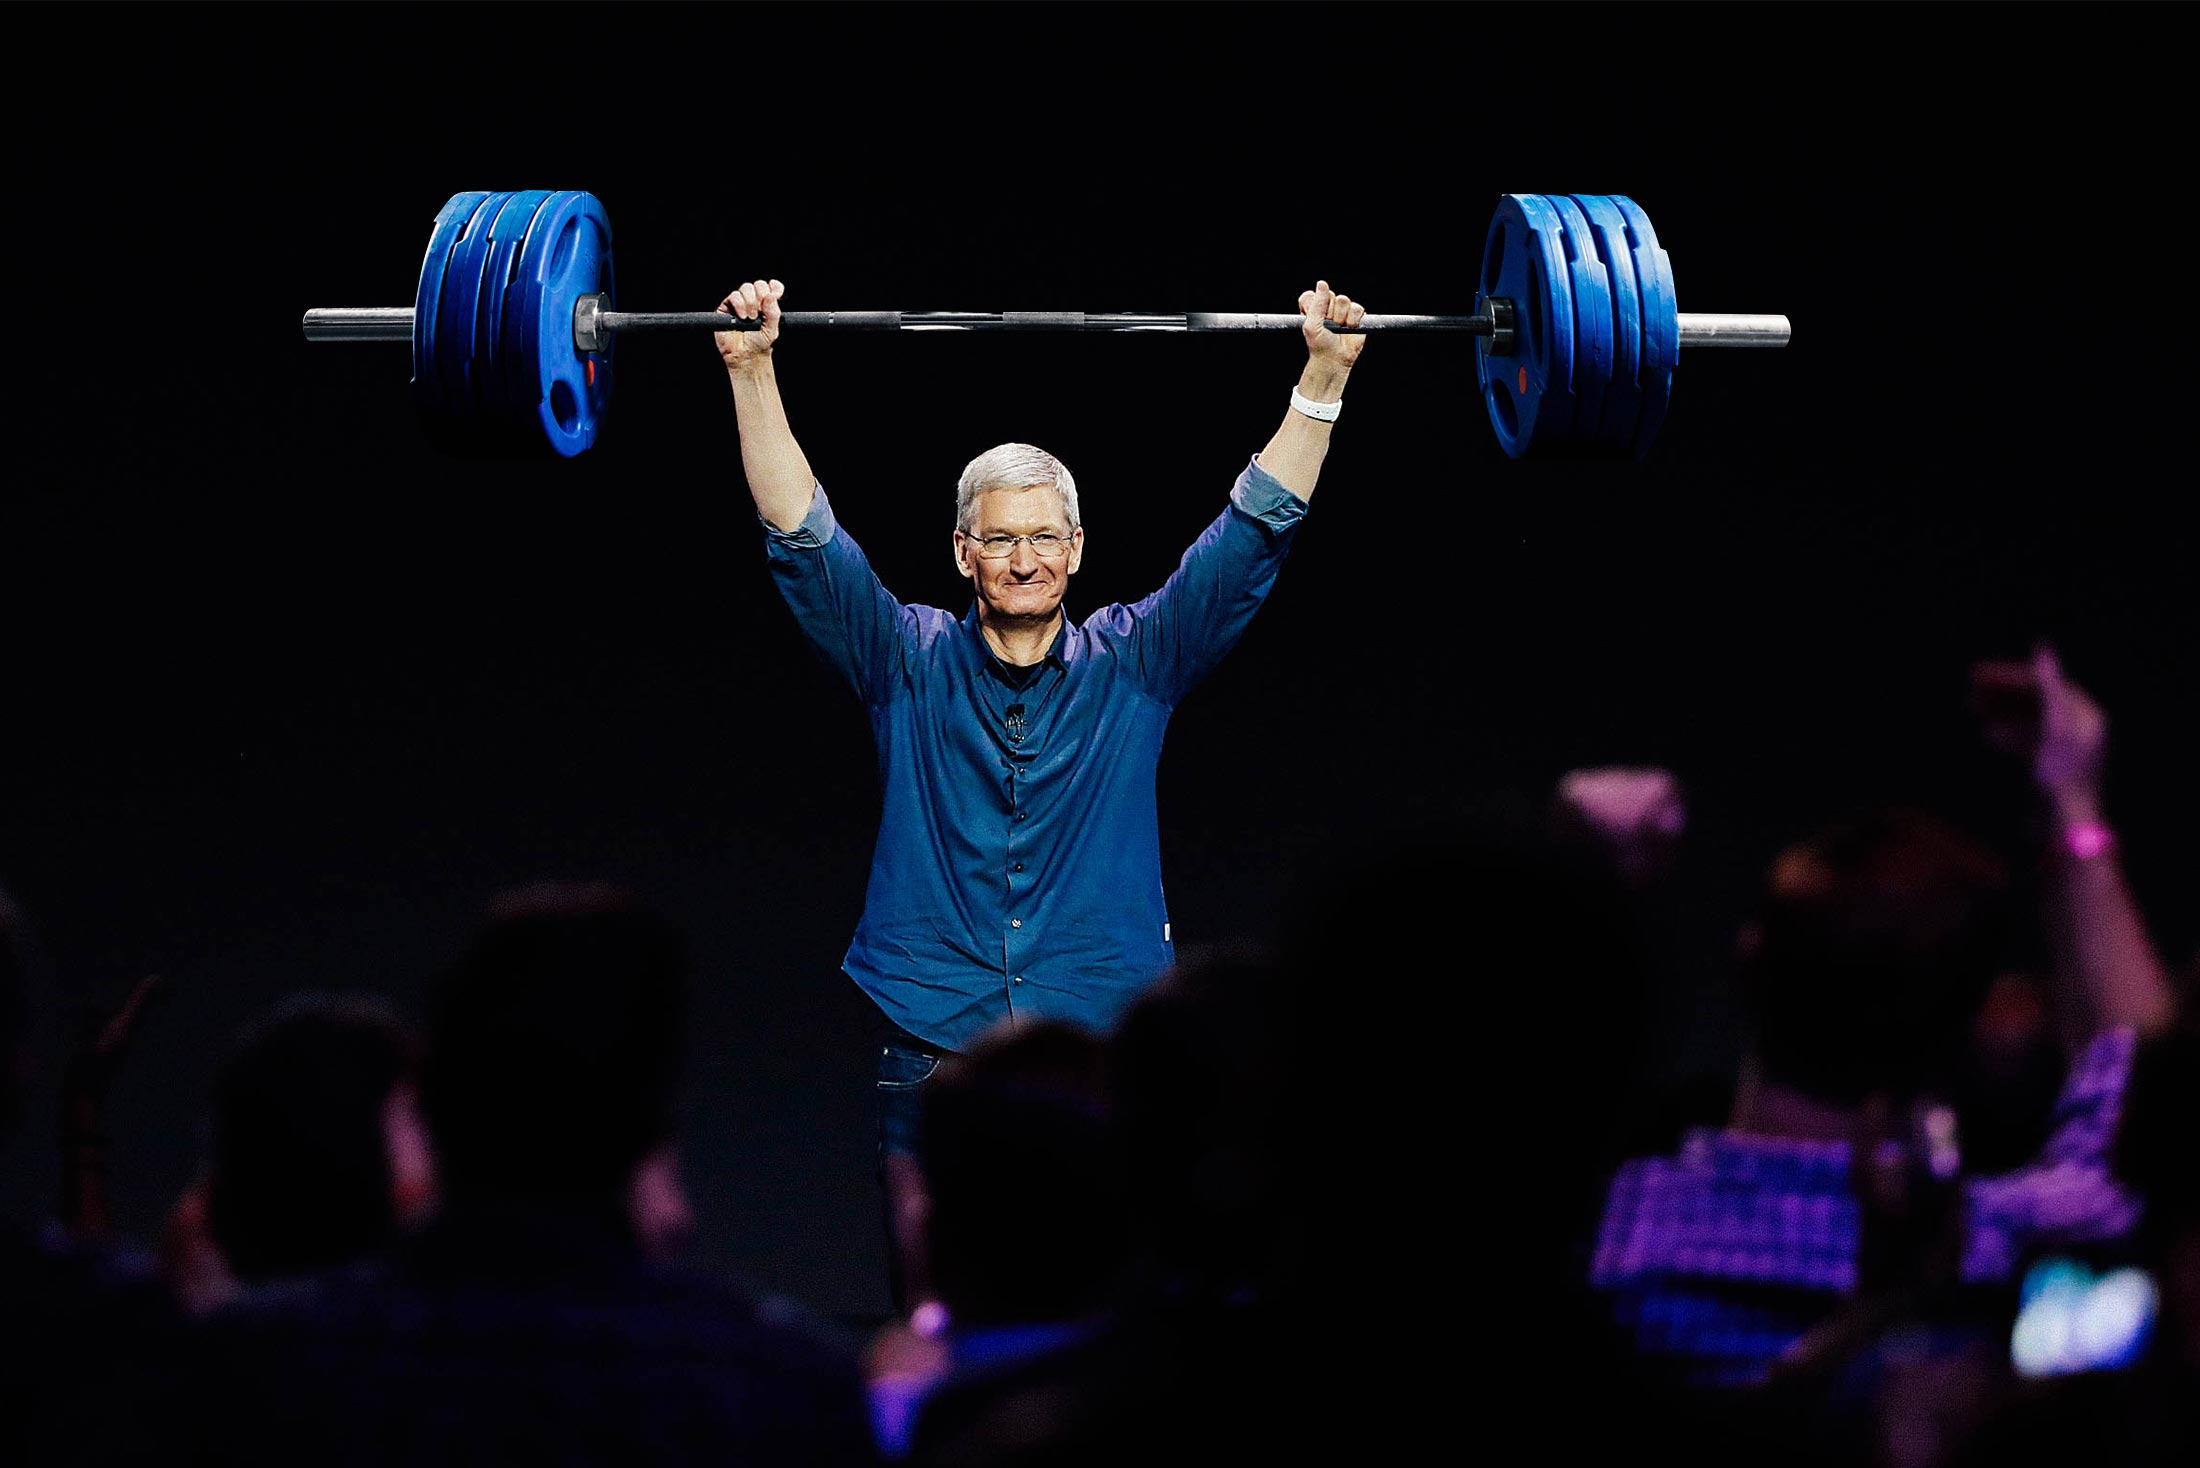 Photo illustration: Tim Cook lifting a barbell over his head at an Apple event.